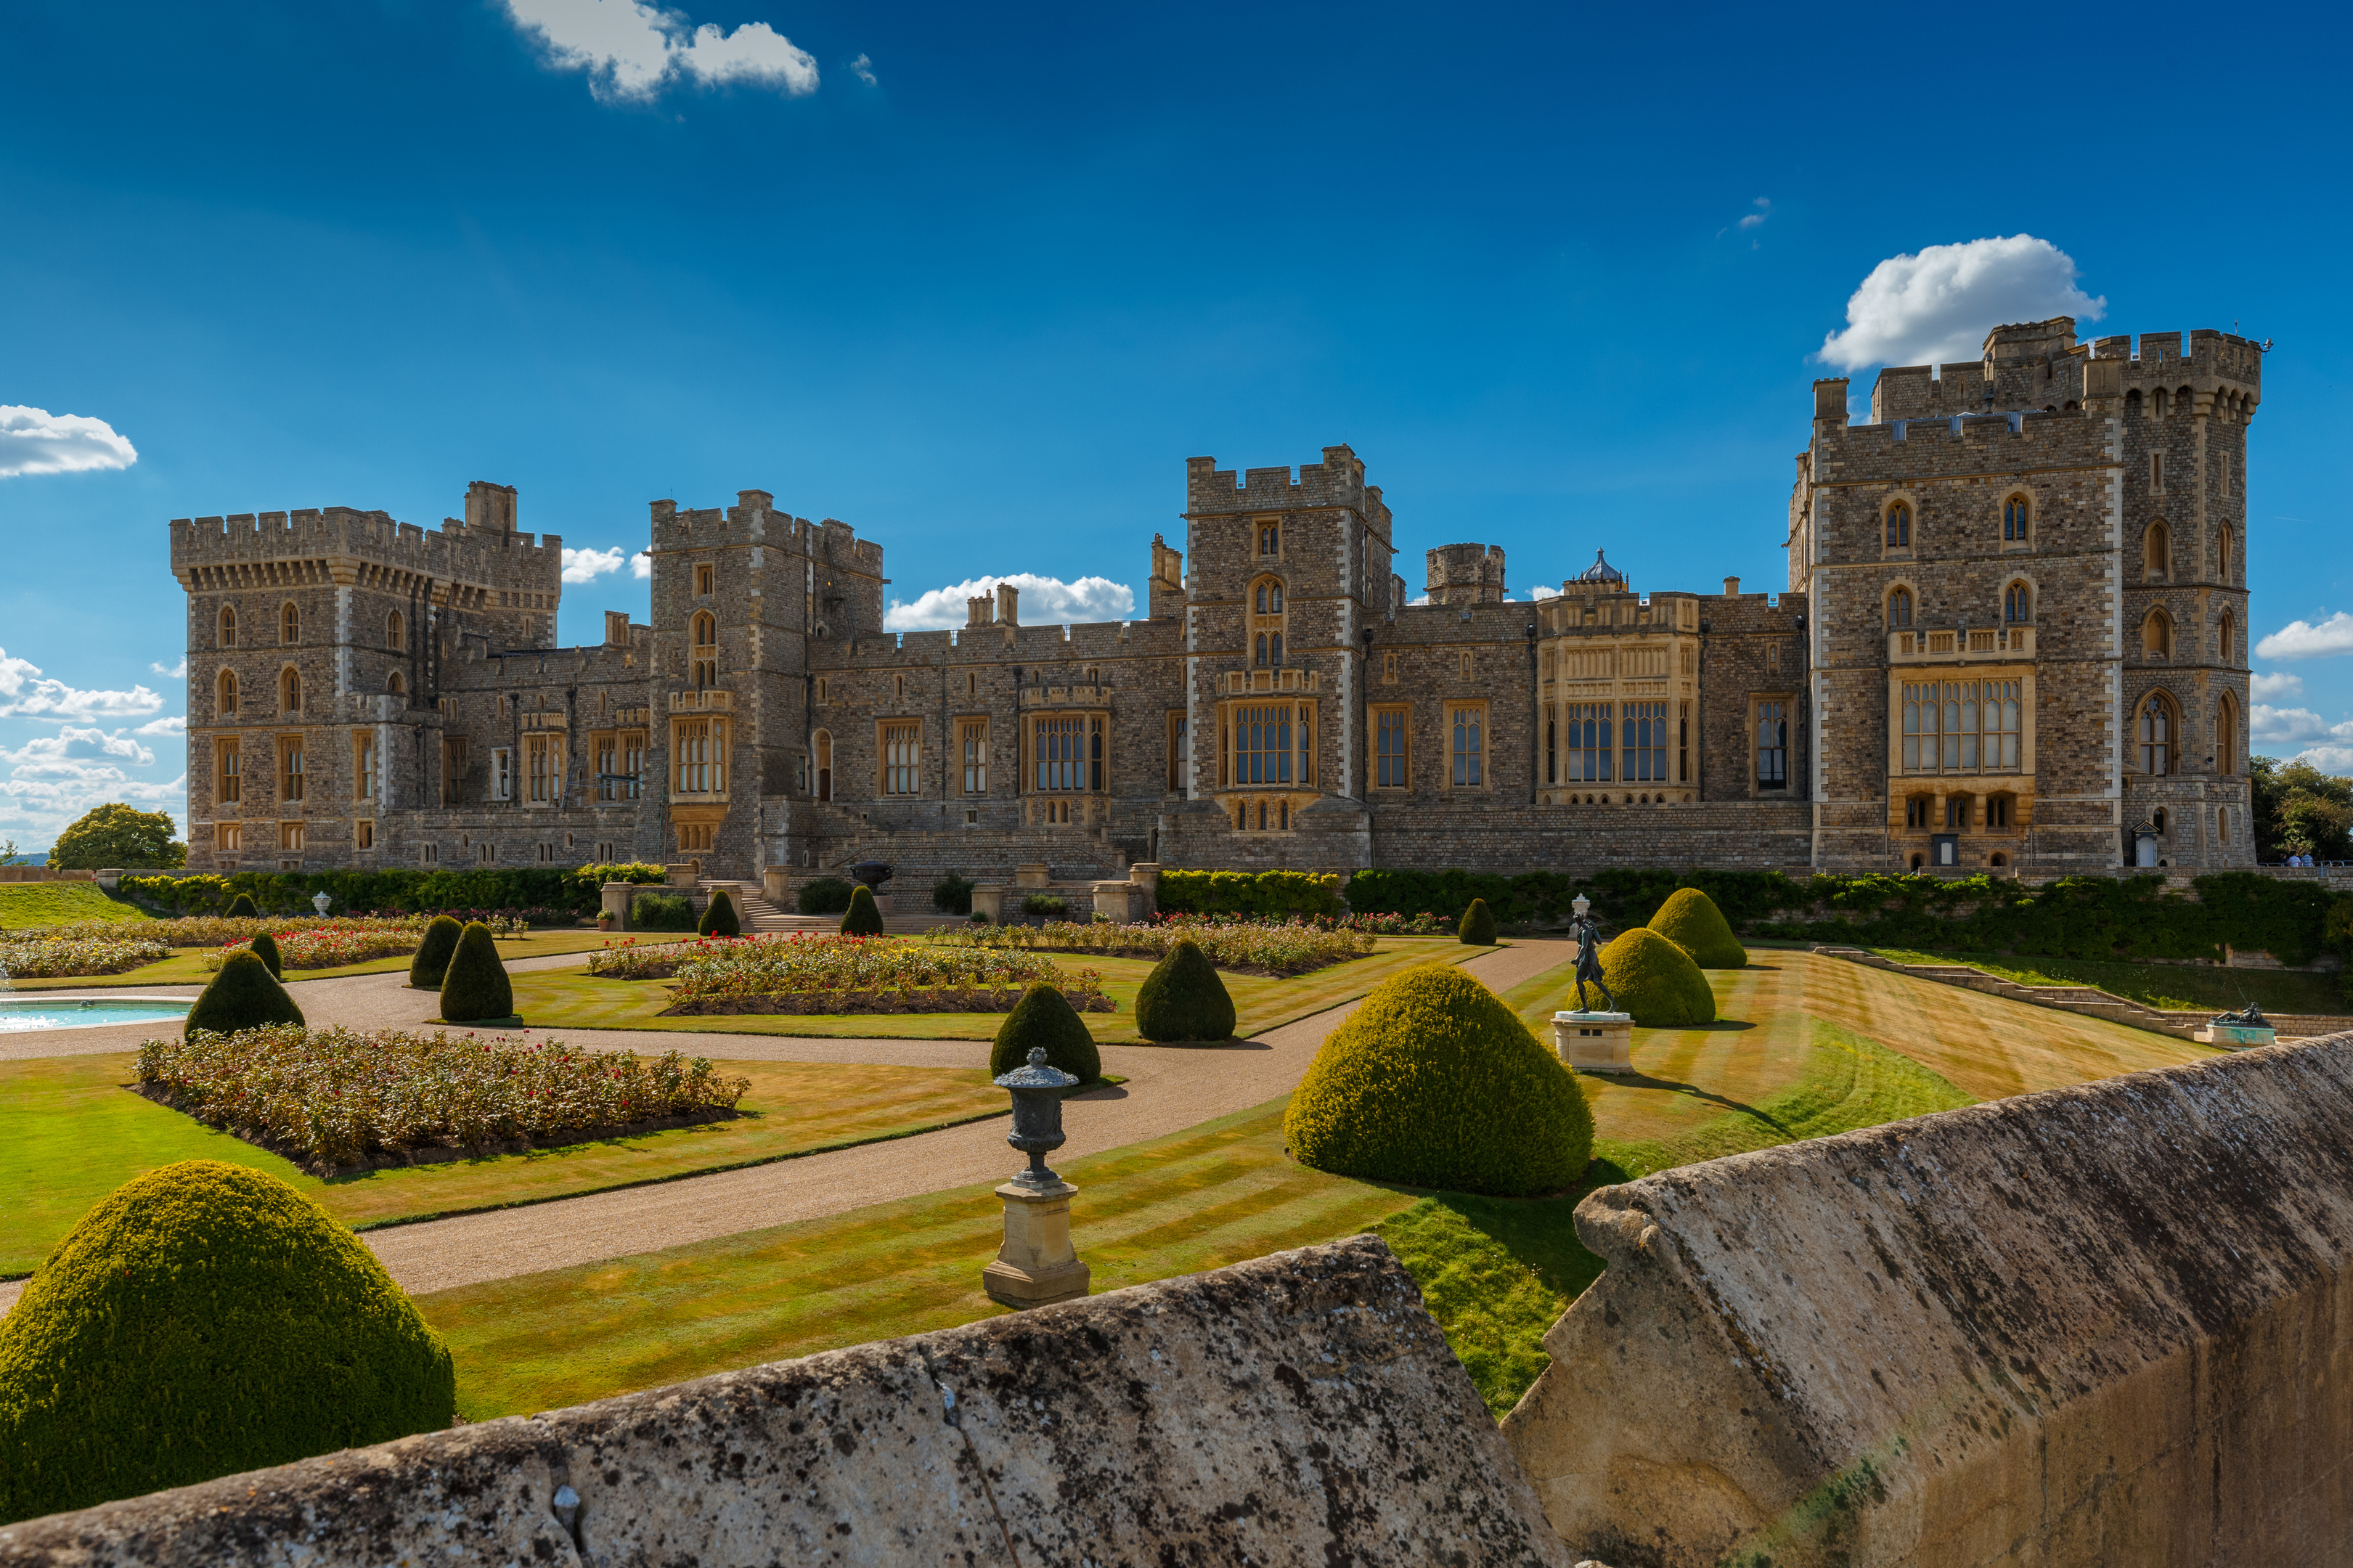 Windsor Castle (Getty Image/iStock)